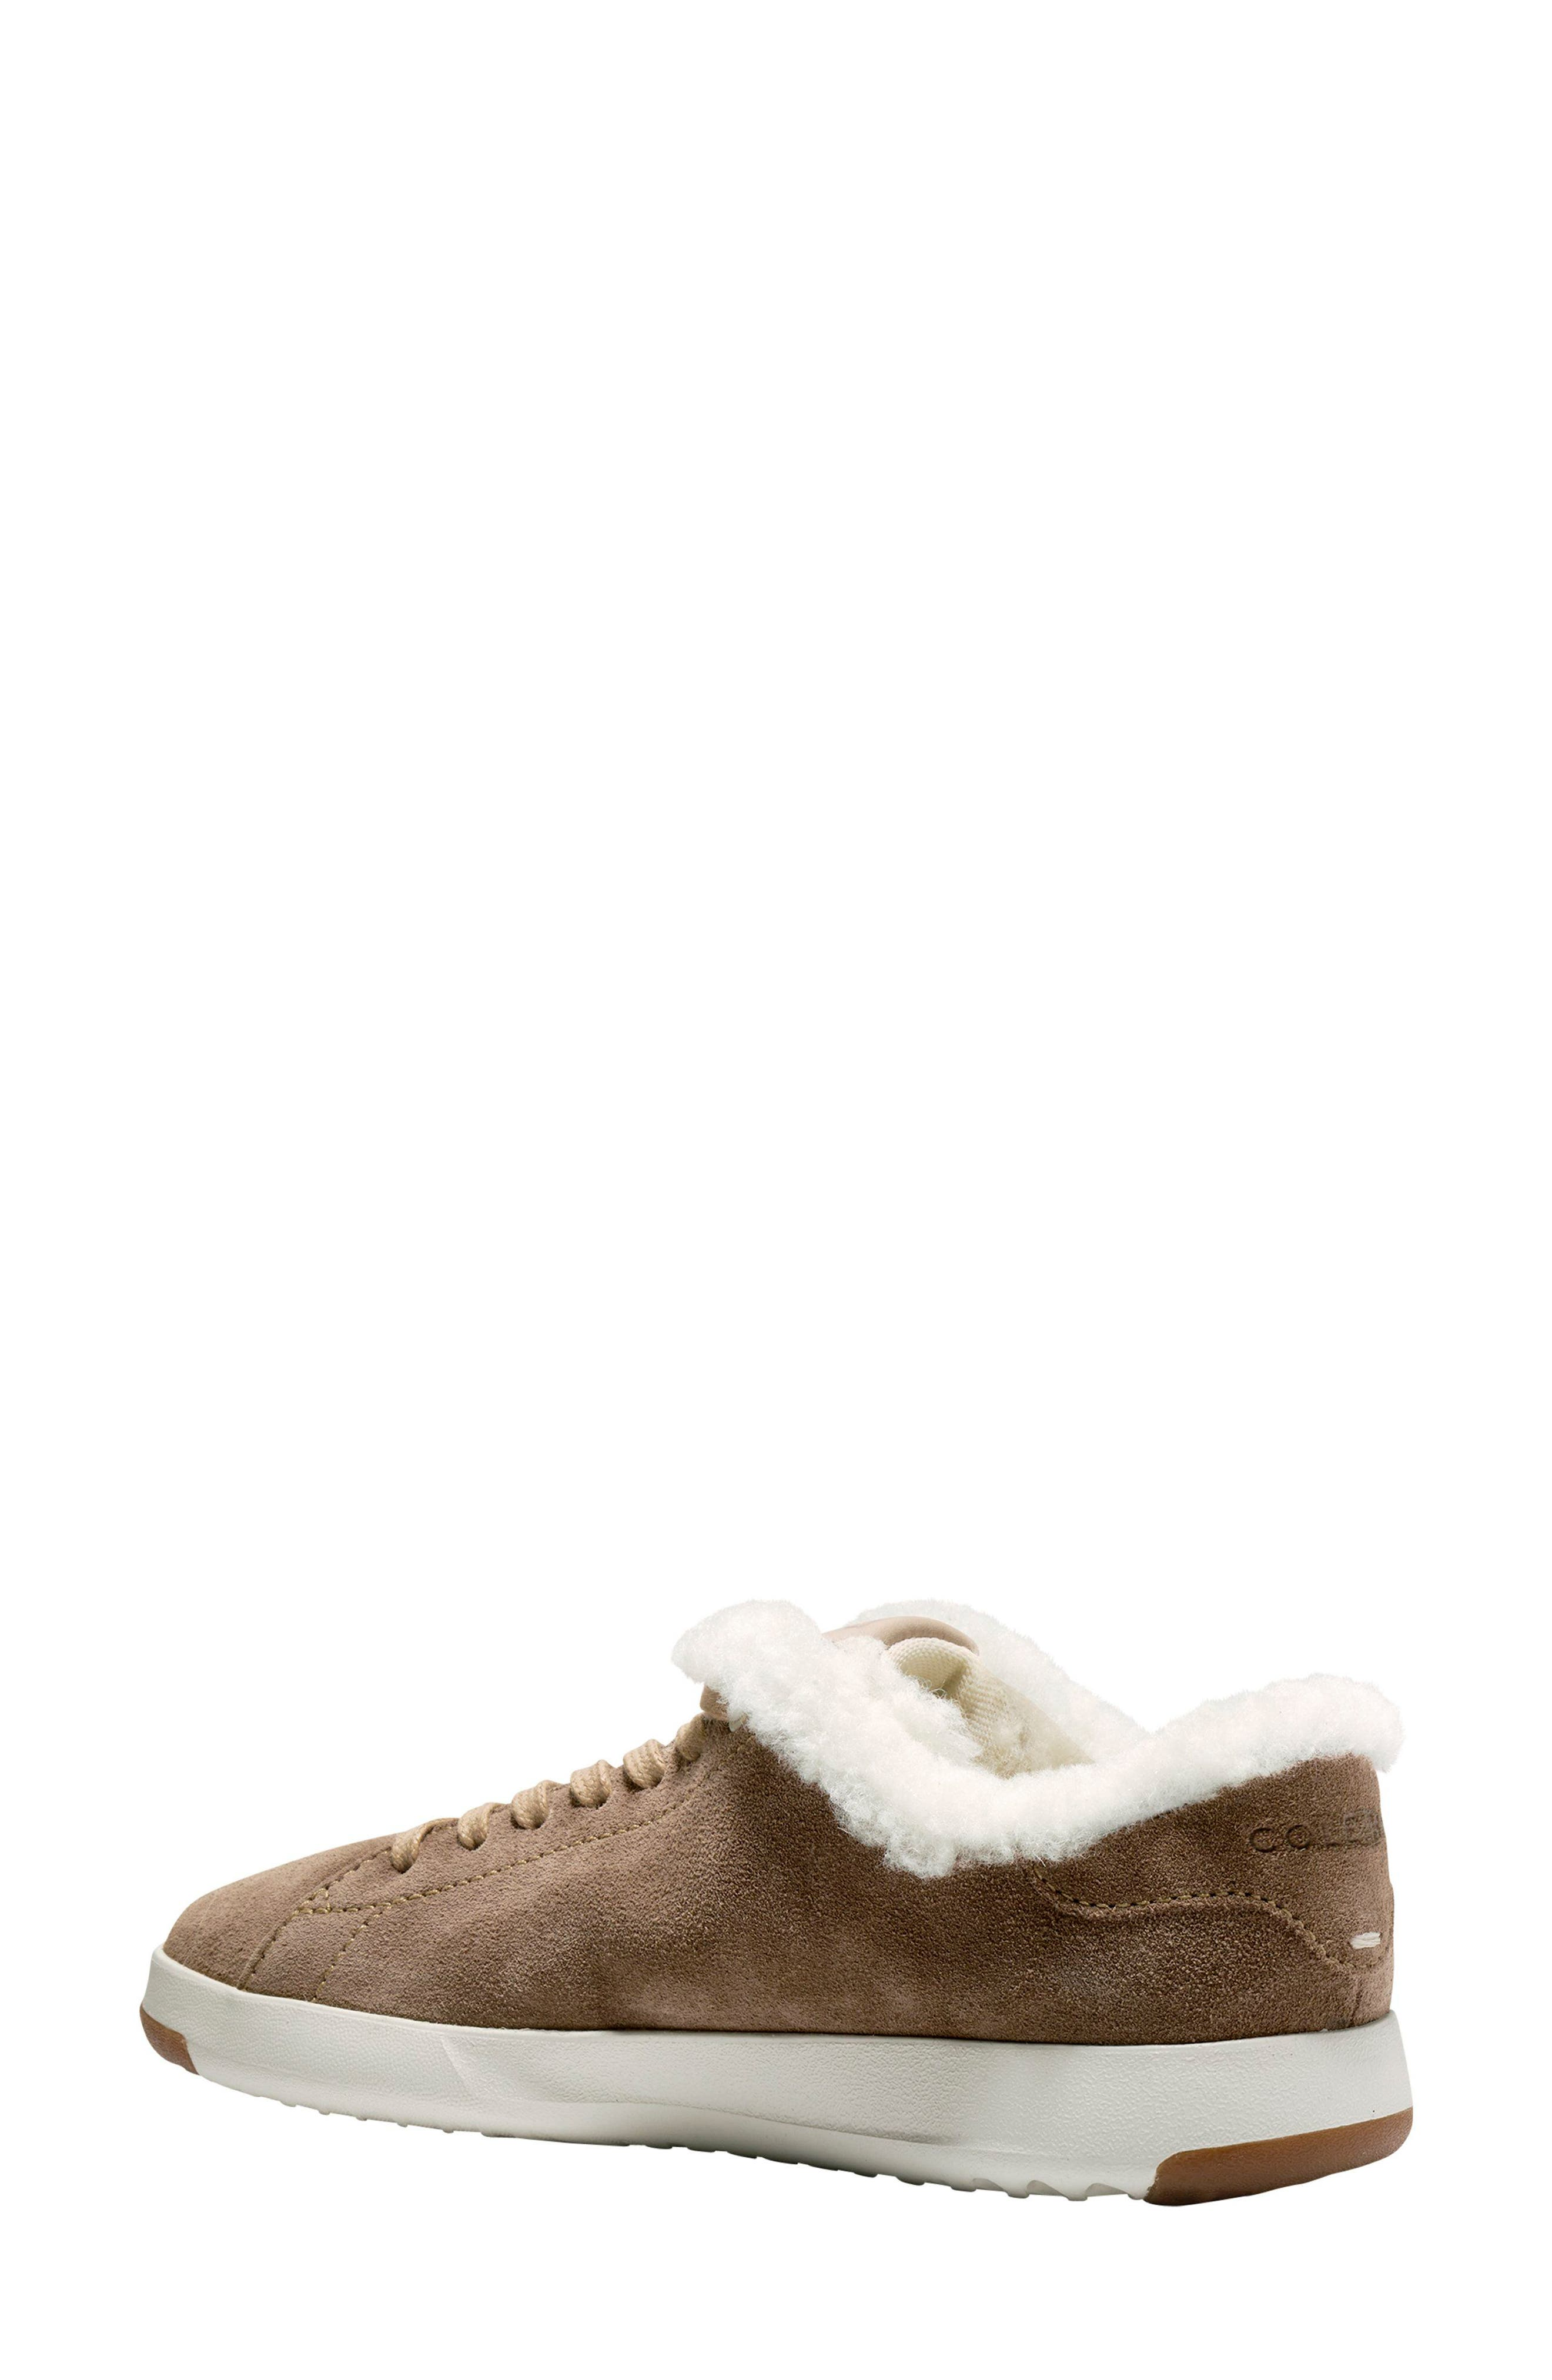 GrandPro Tennis Shoe,                             Alternate thumbnail 2, color,                             Warm Sand Suede